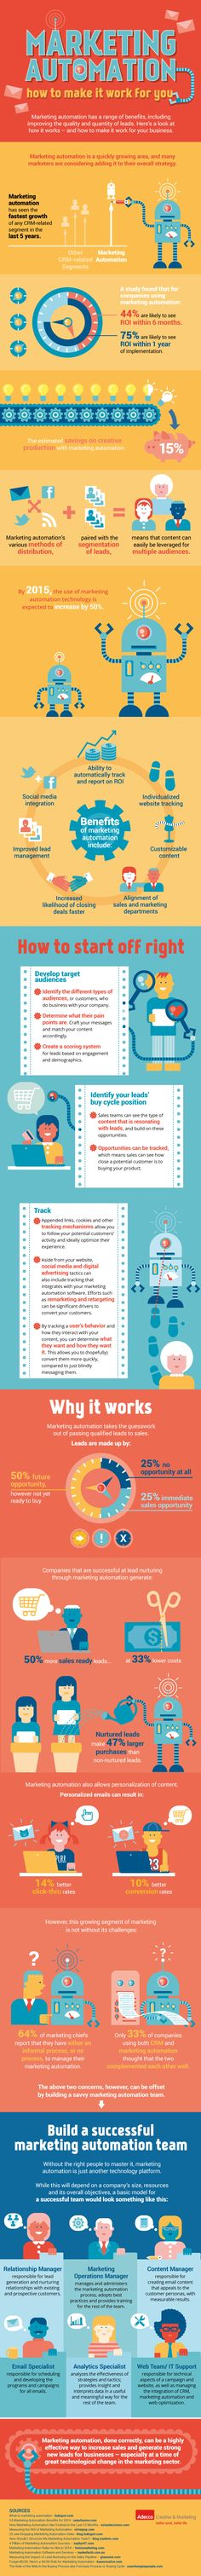 An #infographic on using tools and talent to make marketing automation work for you.